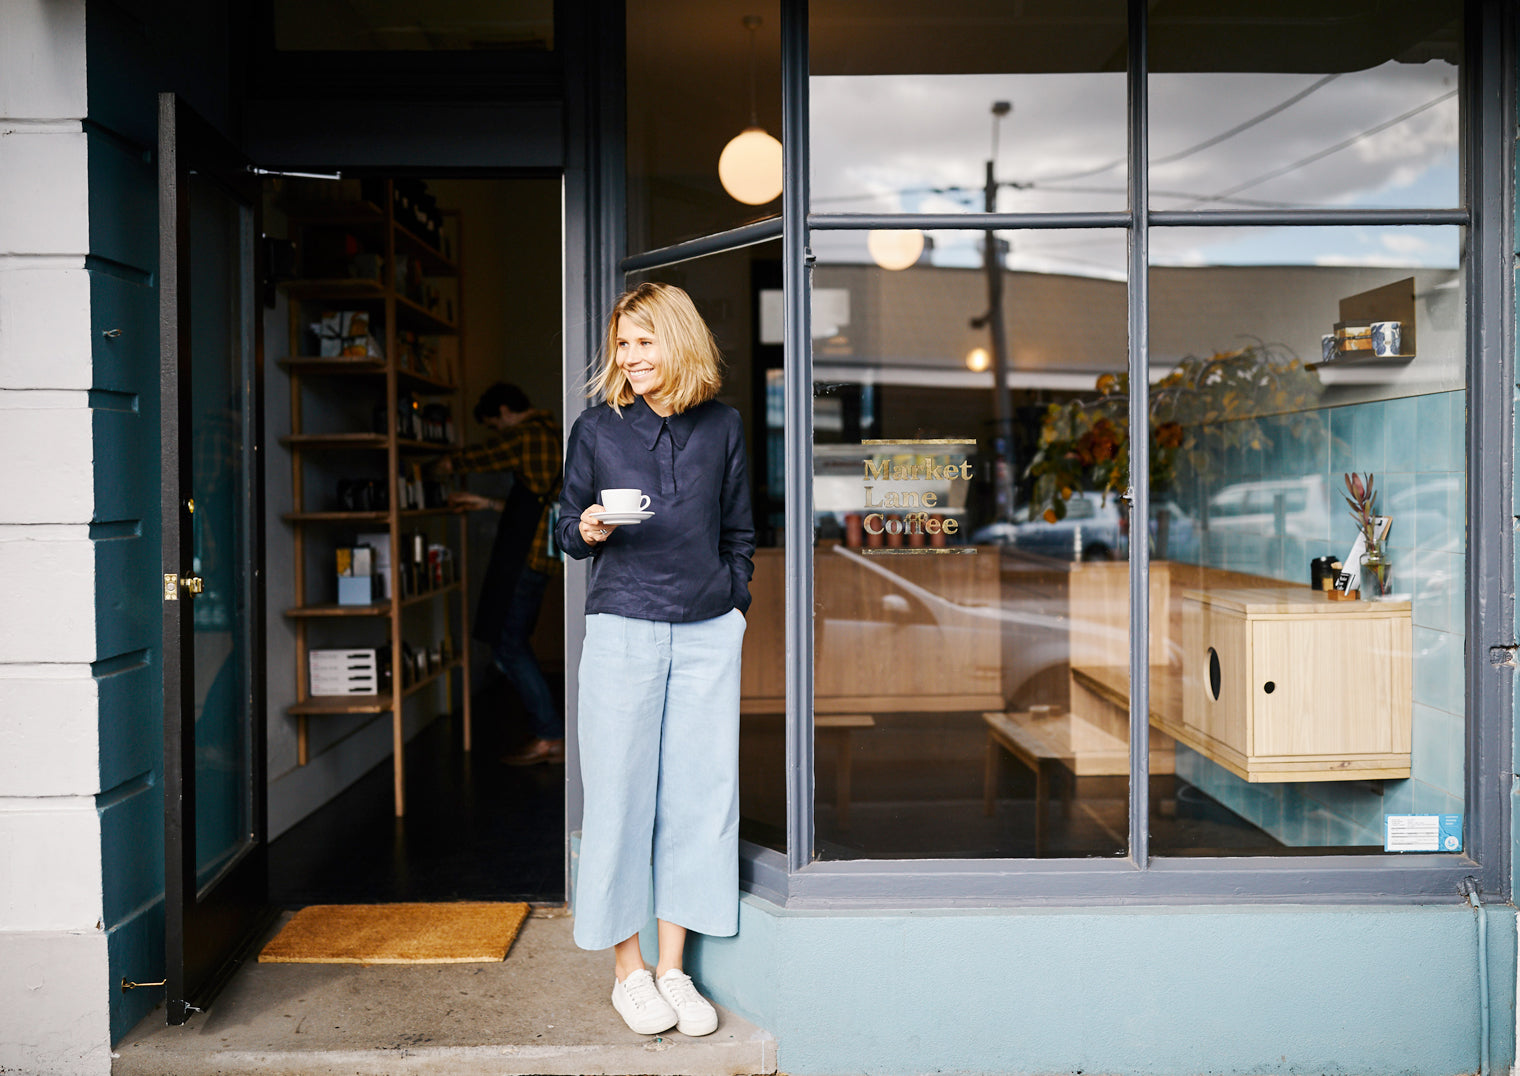 Market Lane Coffee co-founder Fleur Studd enjoying a cup of coffee at Market Lane in South Melbourne.